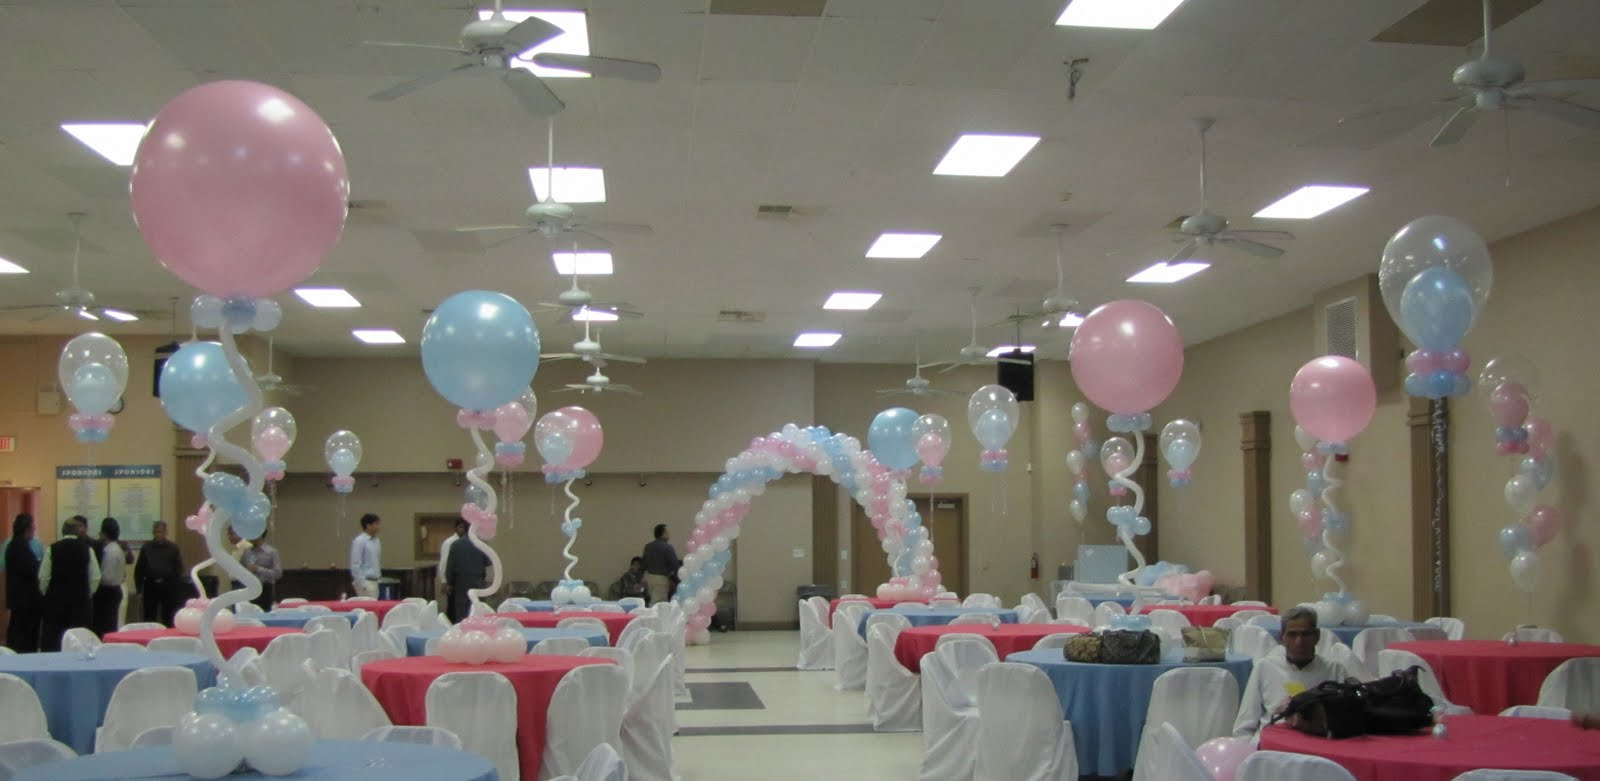 Party people event decorating company baby shower ocala fl for Home decorations for baby shower